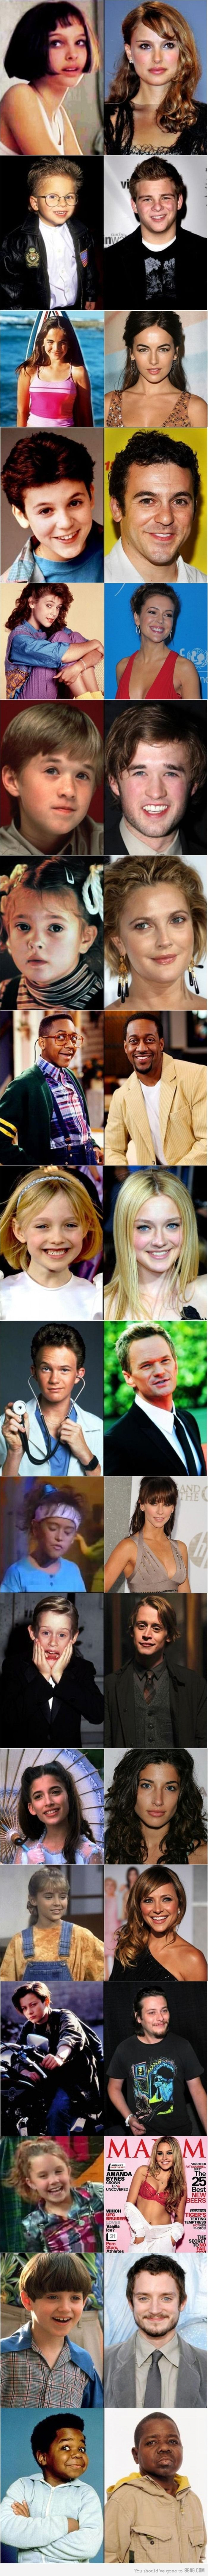 kid actors, then and now.  On this board there are famous people who we can see them change and mature.